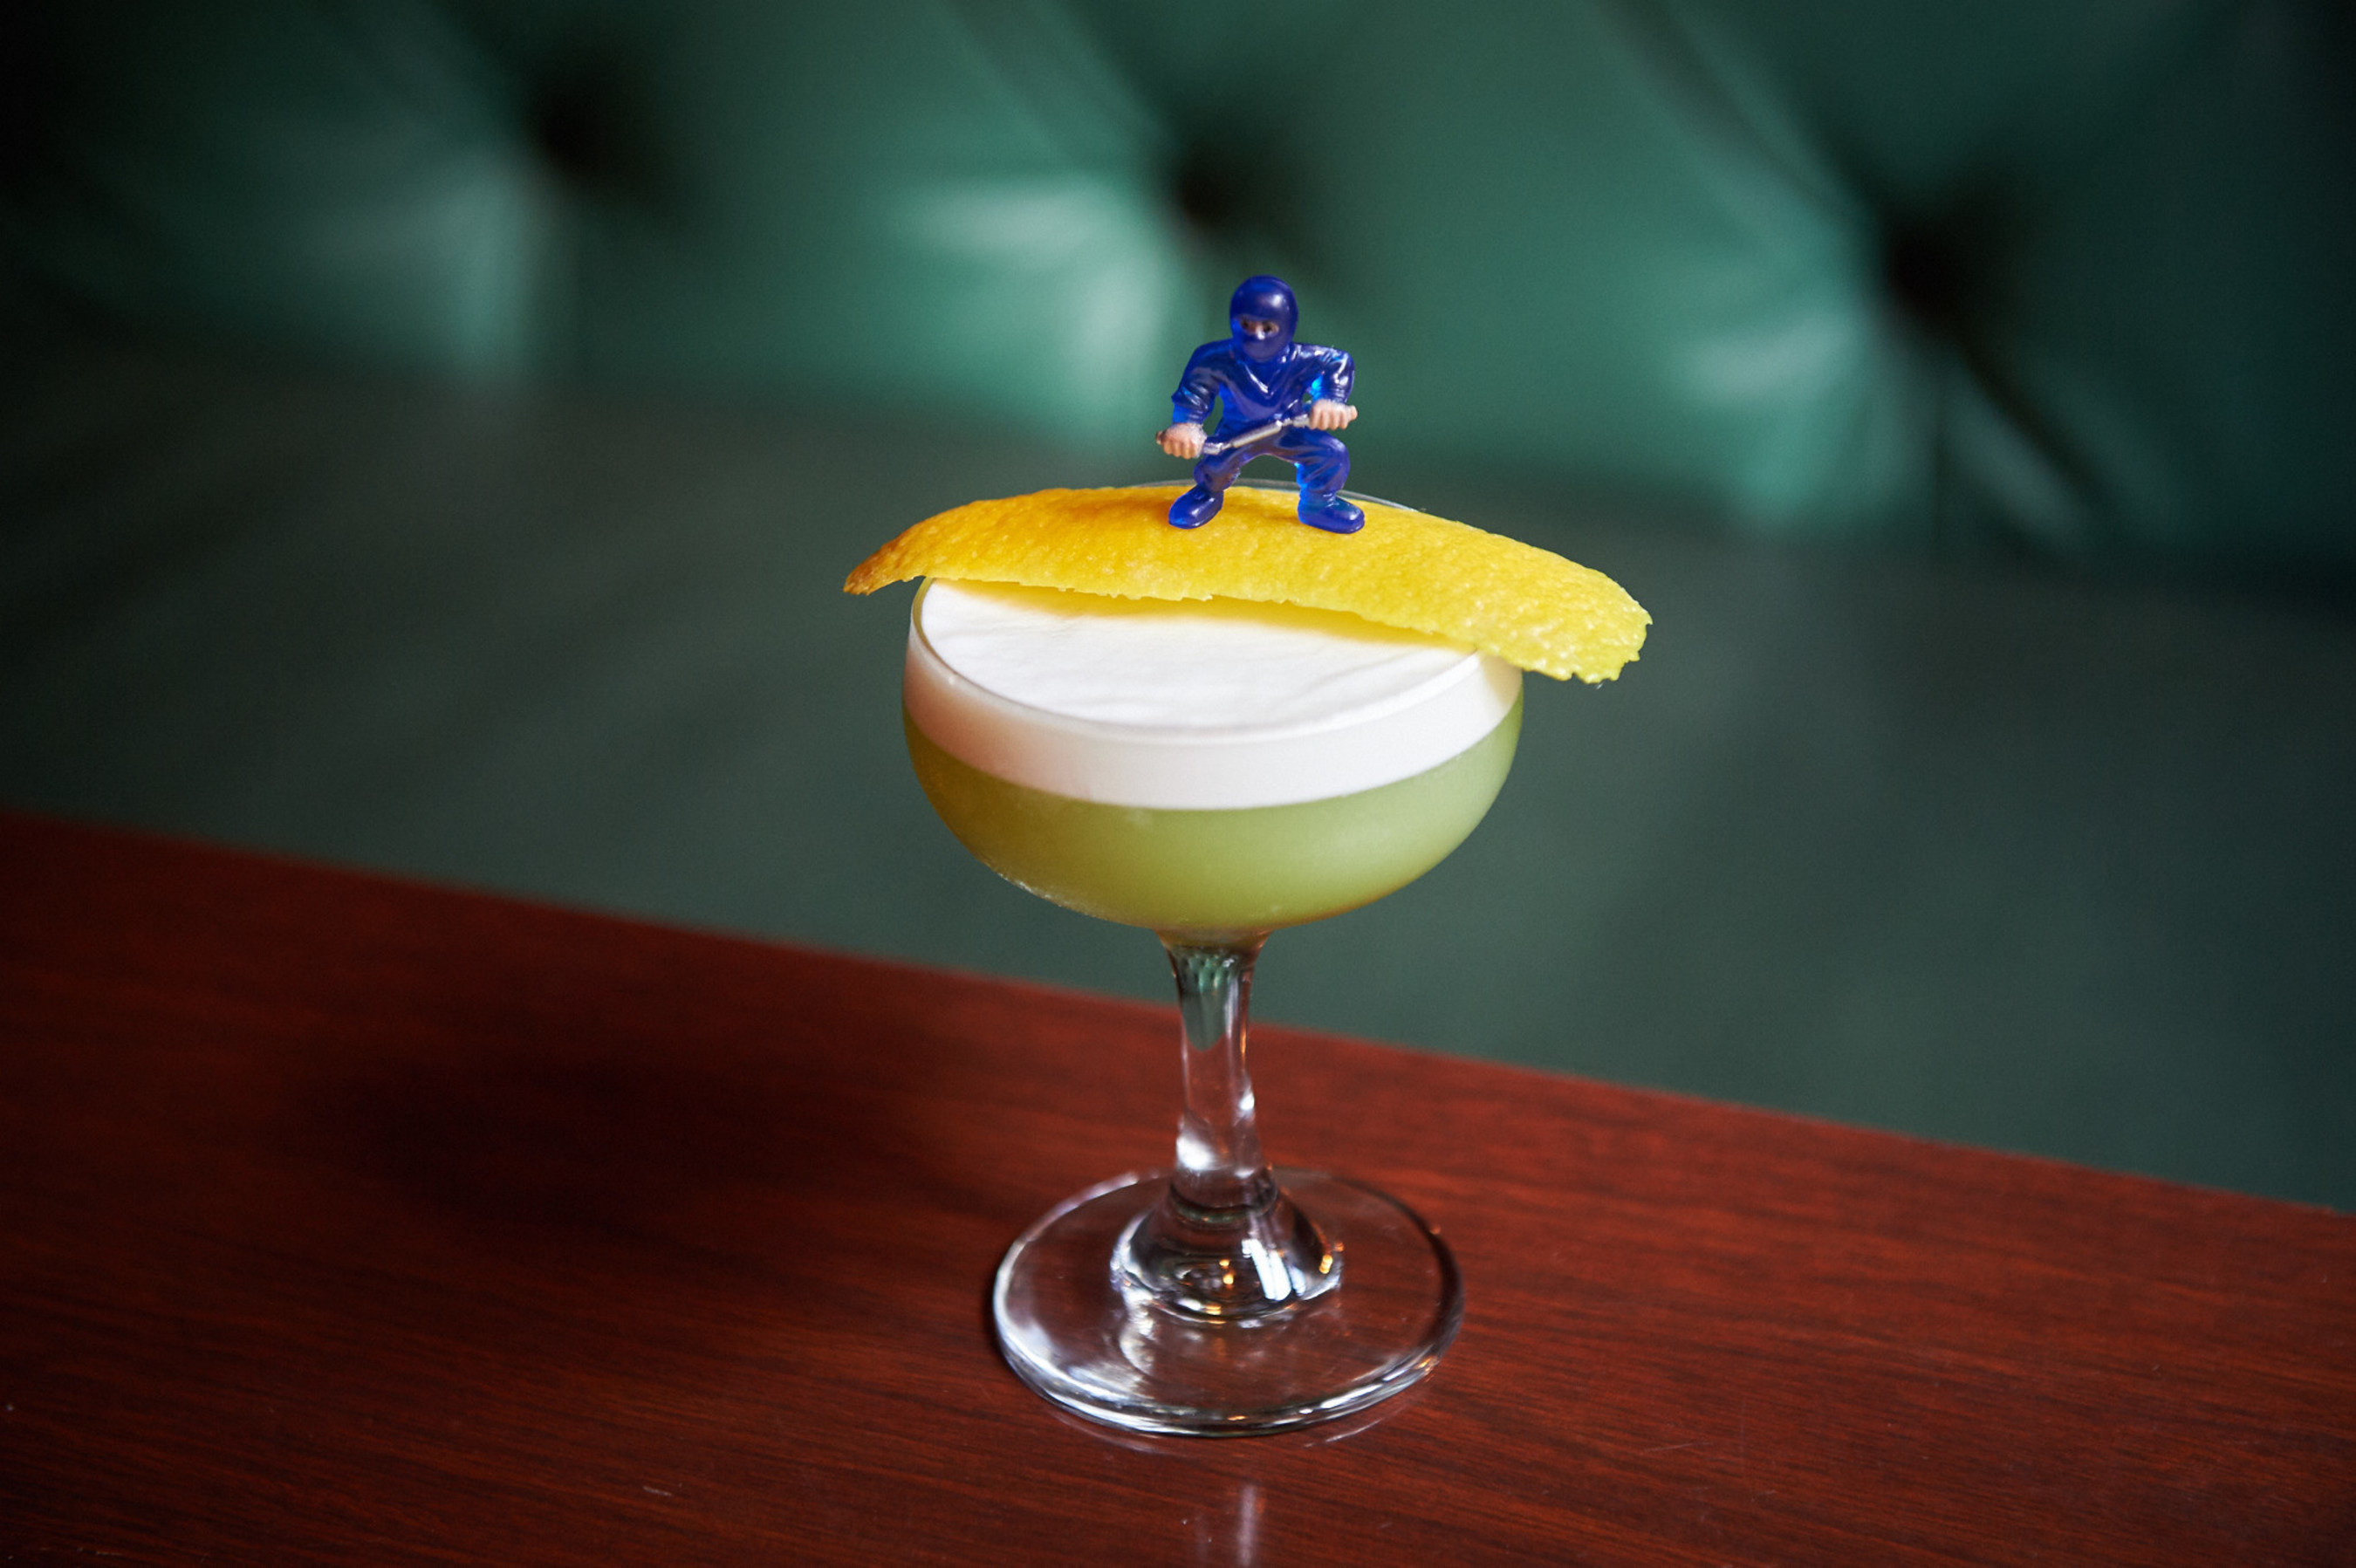 """Hanna Lee Communications Announces """"What's on Tap for 2016 Tastemaker Survey"""" Featuring Top Cocktail and Spirits Industry Luminaries (www.instagram.com/hannaleenyc/)"""